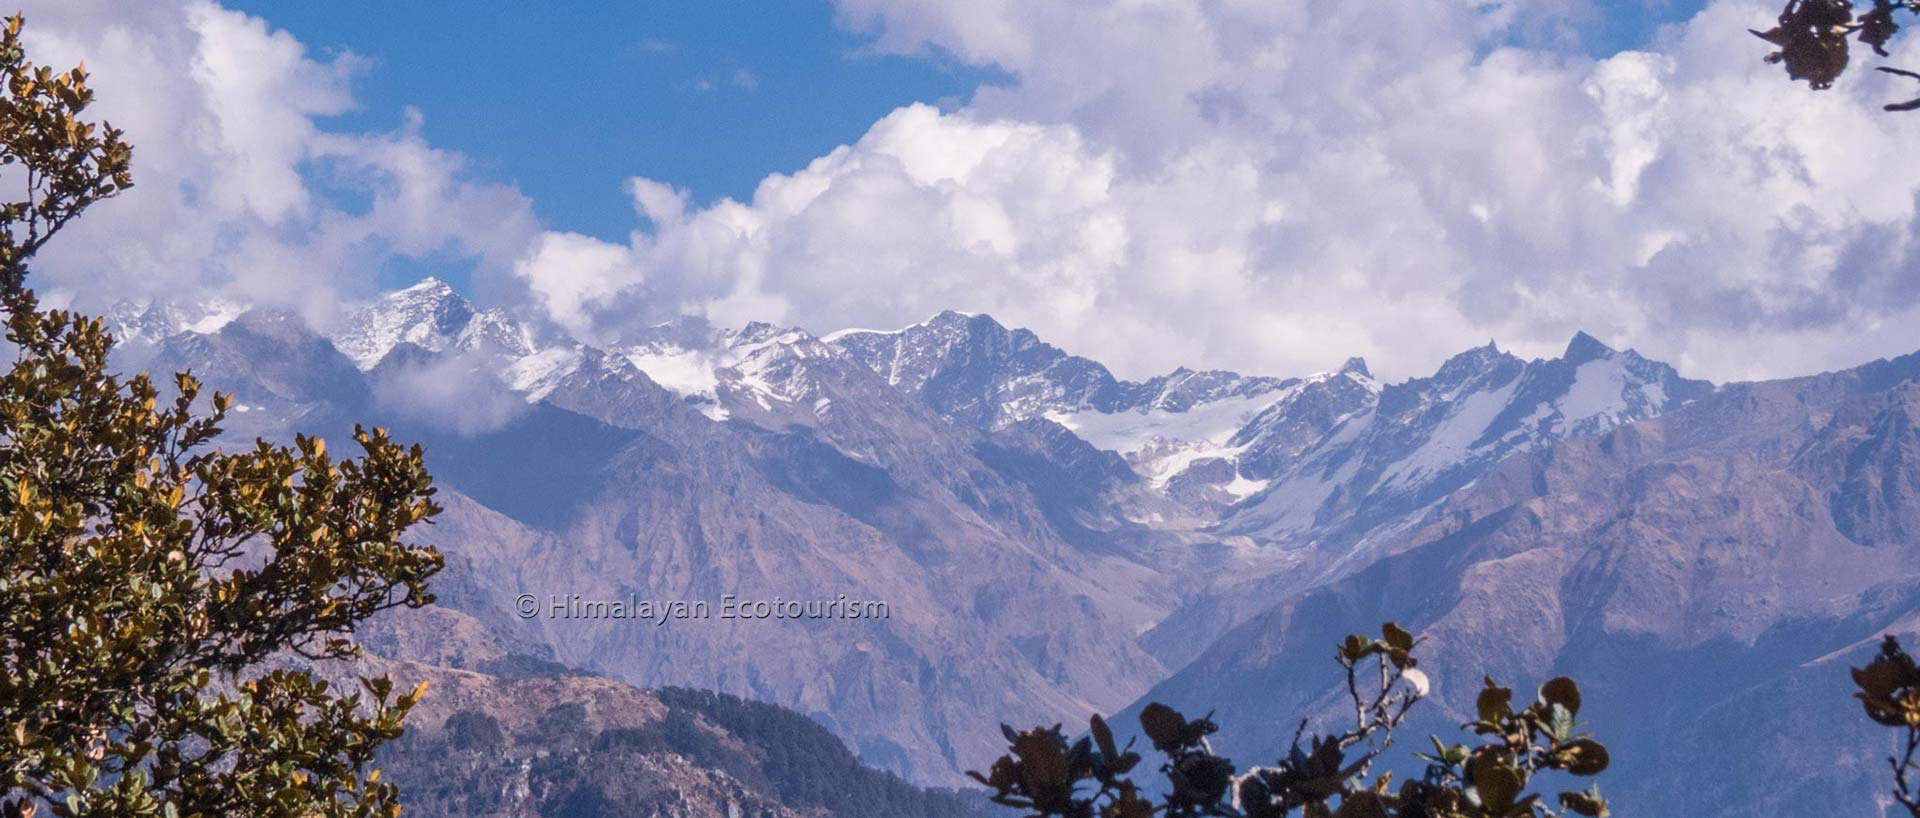 Trek in the Great Himalayan National Park GHNP - Tirthan valley